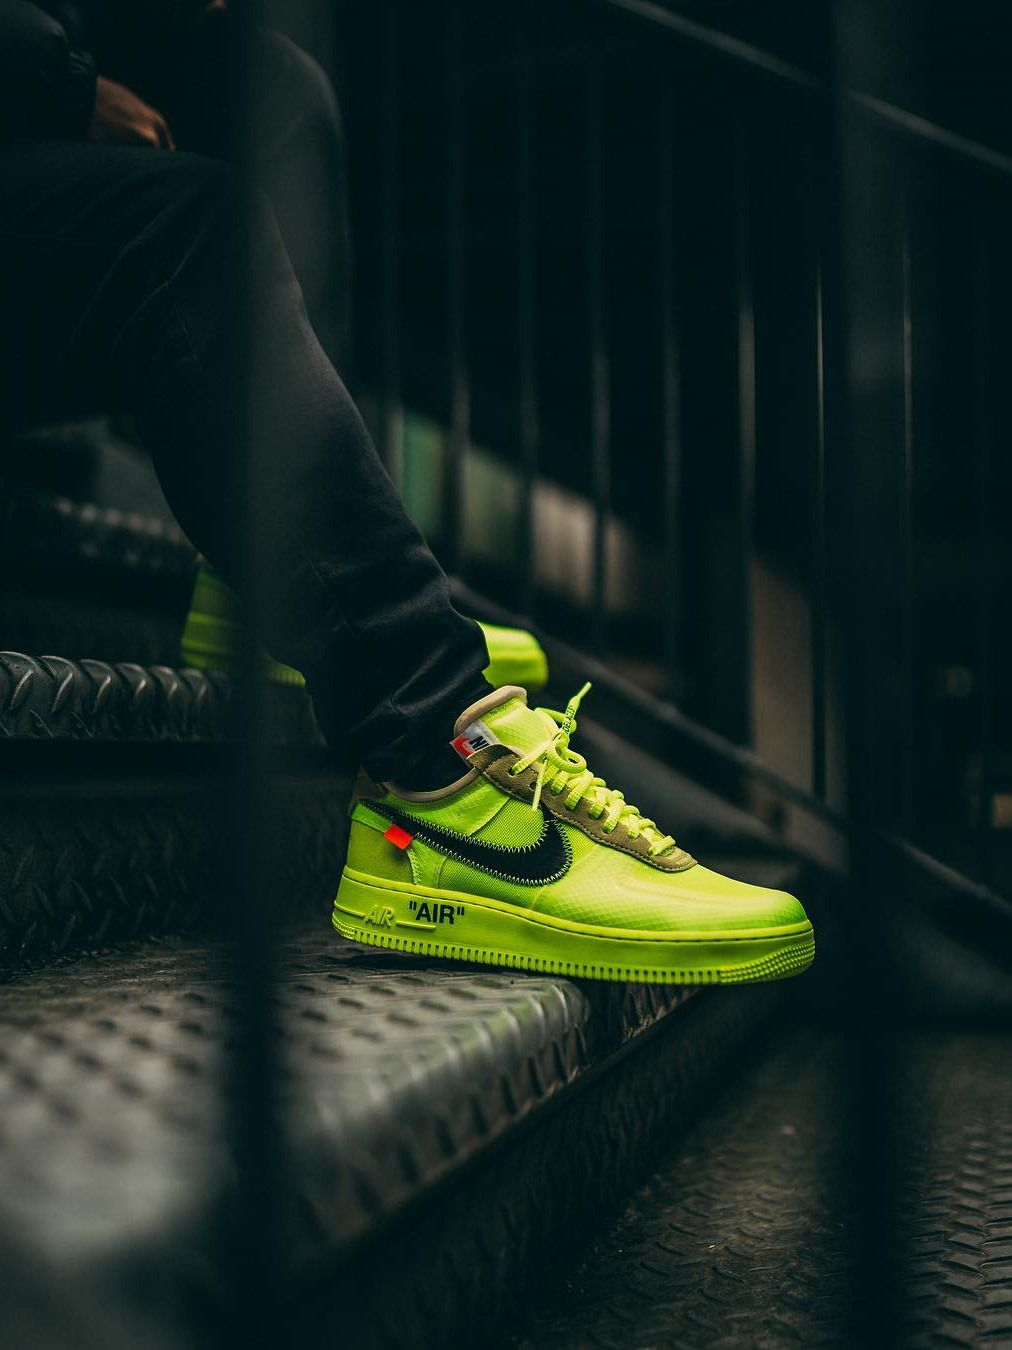 Off White X Nike Air Force 1 Volt 2018 By Peter Coyne Nike Air Shoes Nike Shoes Air Force Sneakers Men Fashion